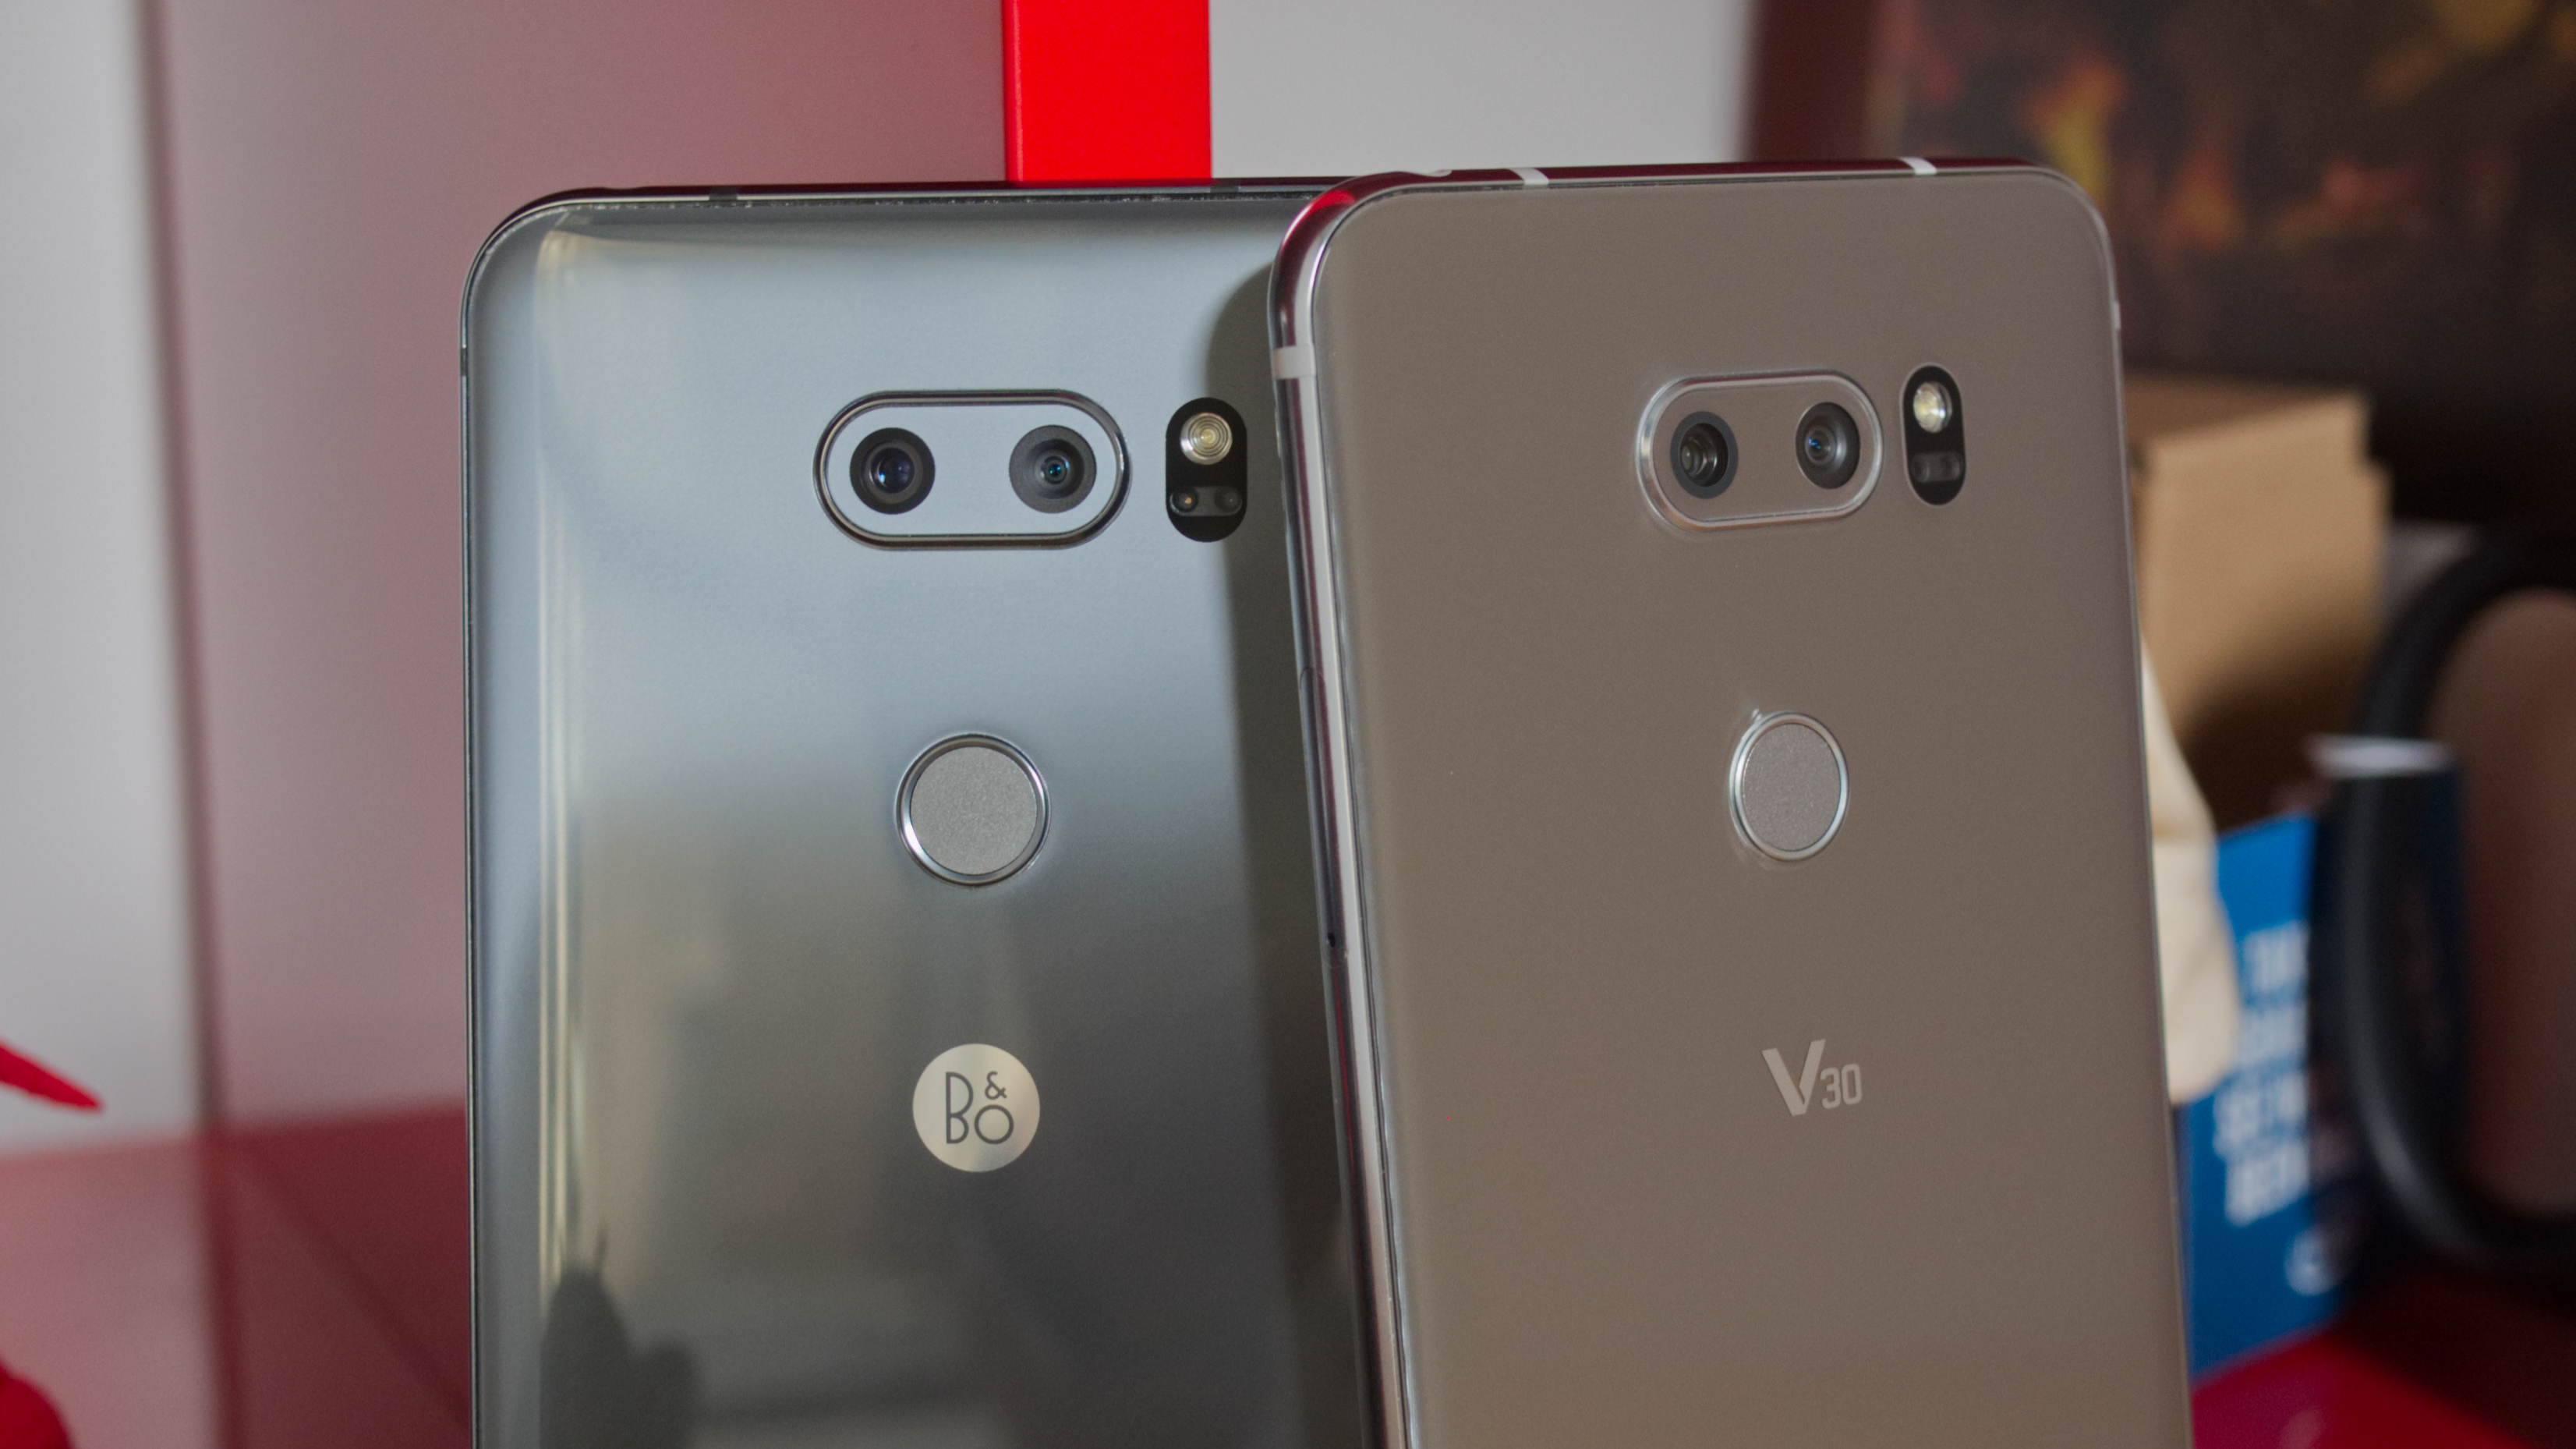 New LG V30 update brings AI features and a name change | TechRadar